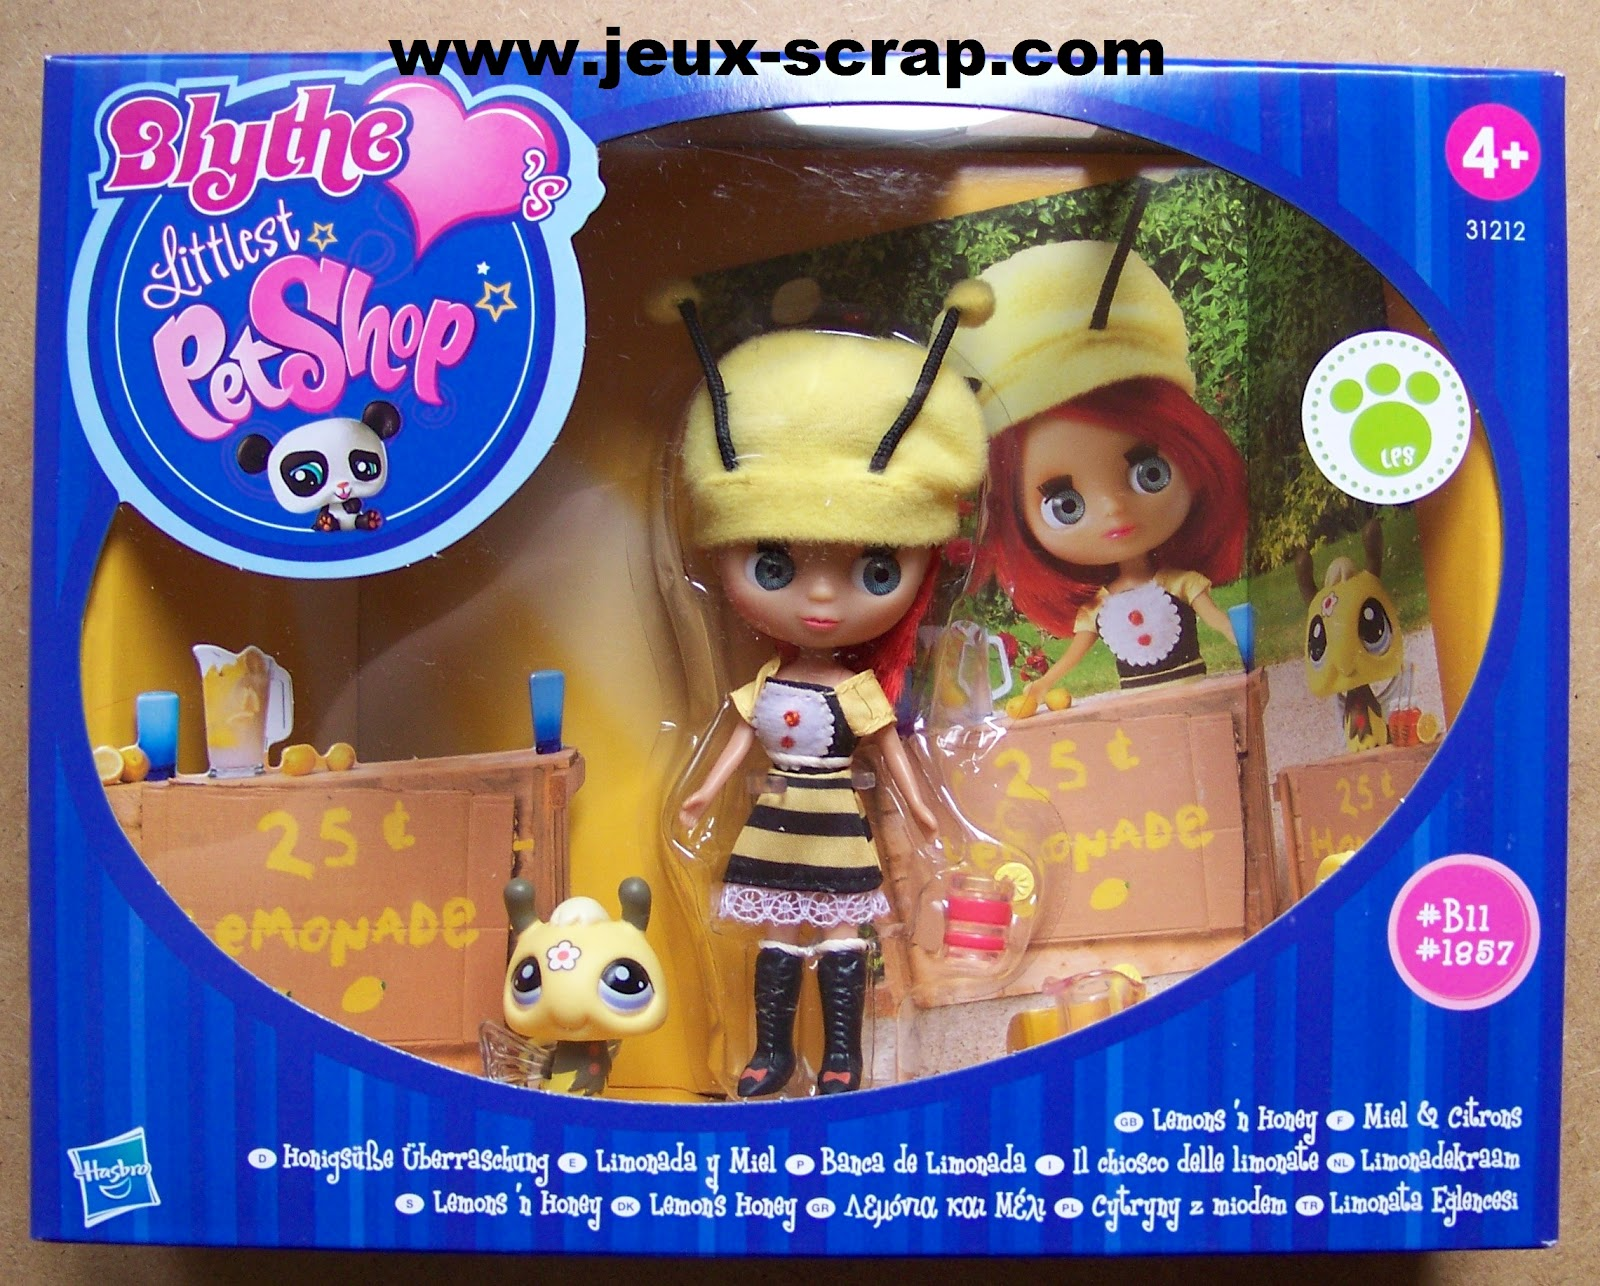 blog boutique jouets jeux scrap littlest pet shop blythe. Black Bedroom Furniture Sets. Home Design Ideas